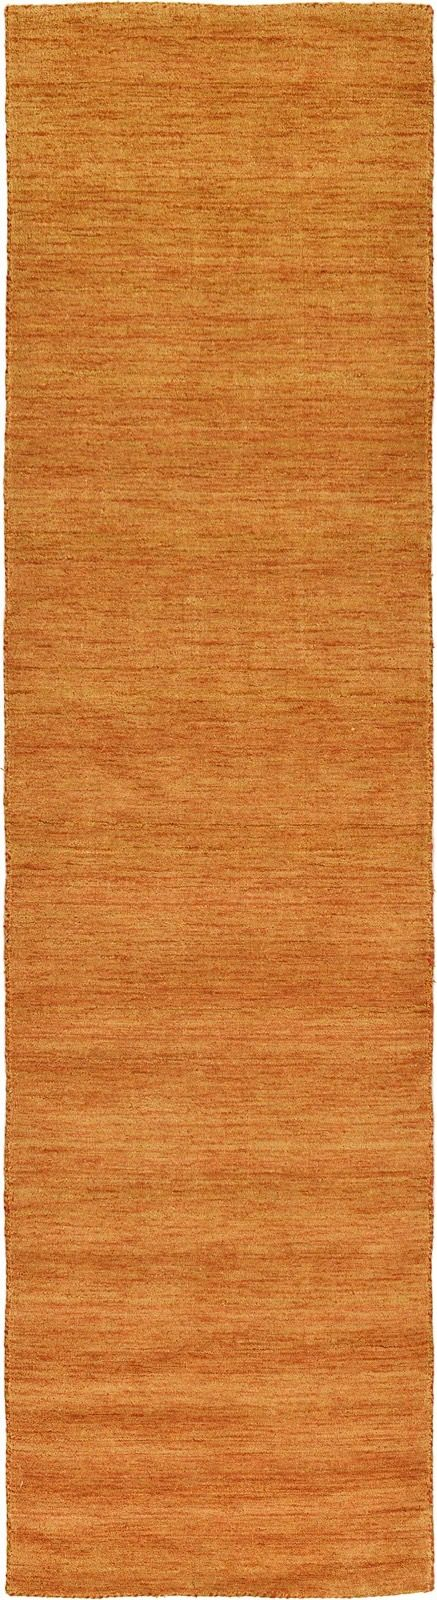 rugpal shiva solid/striped area rug collection